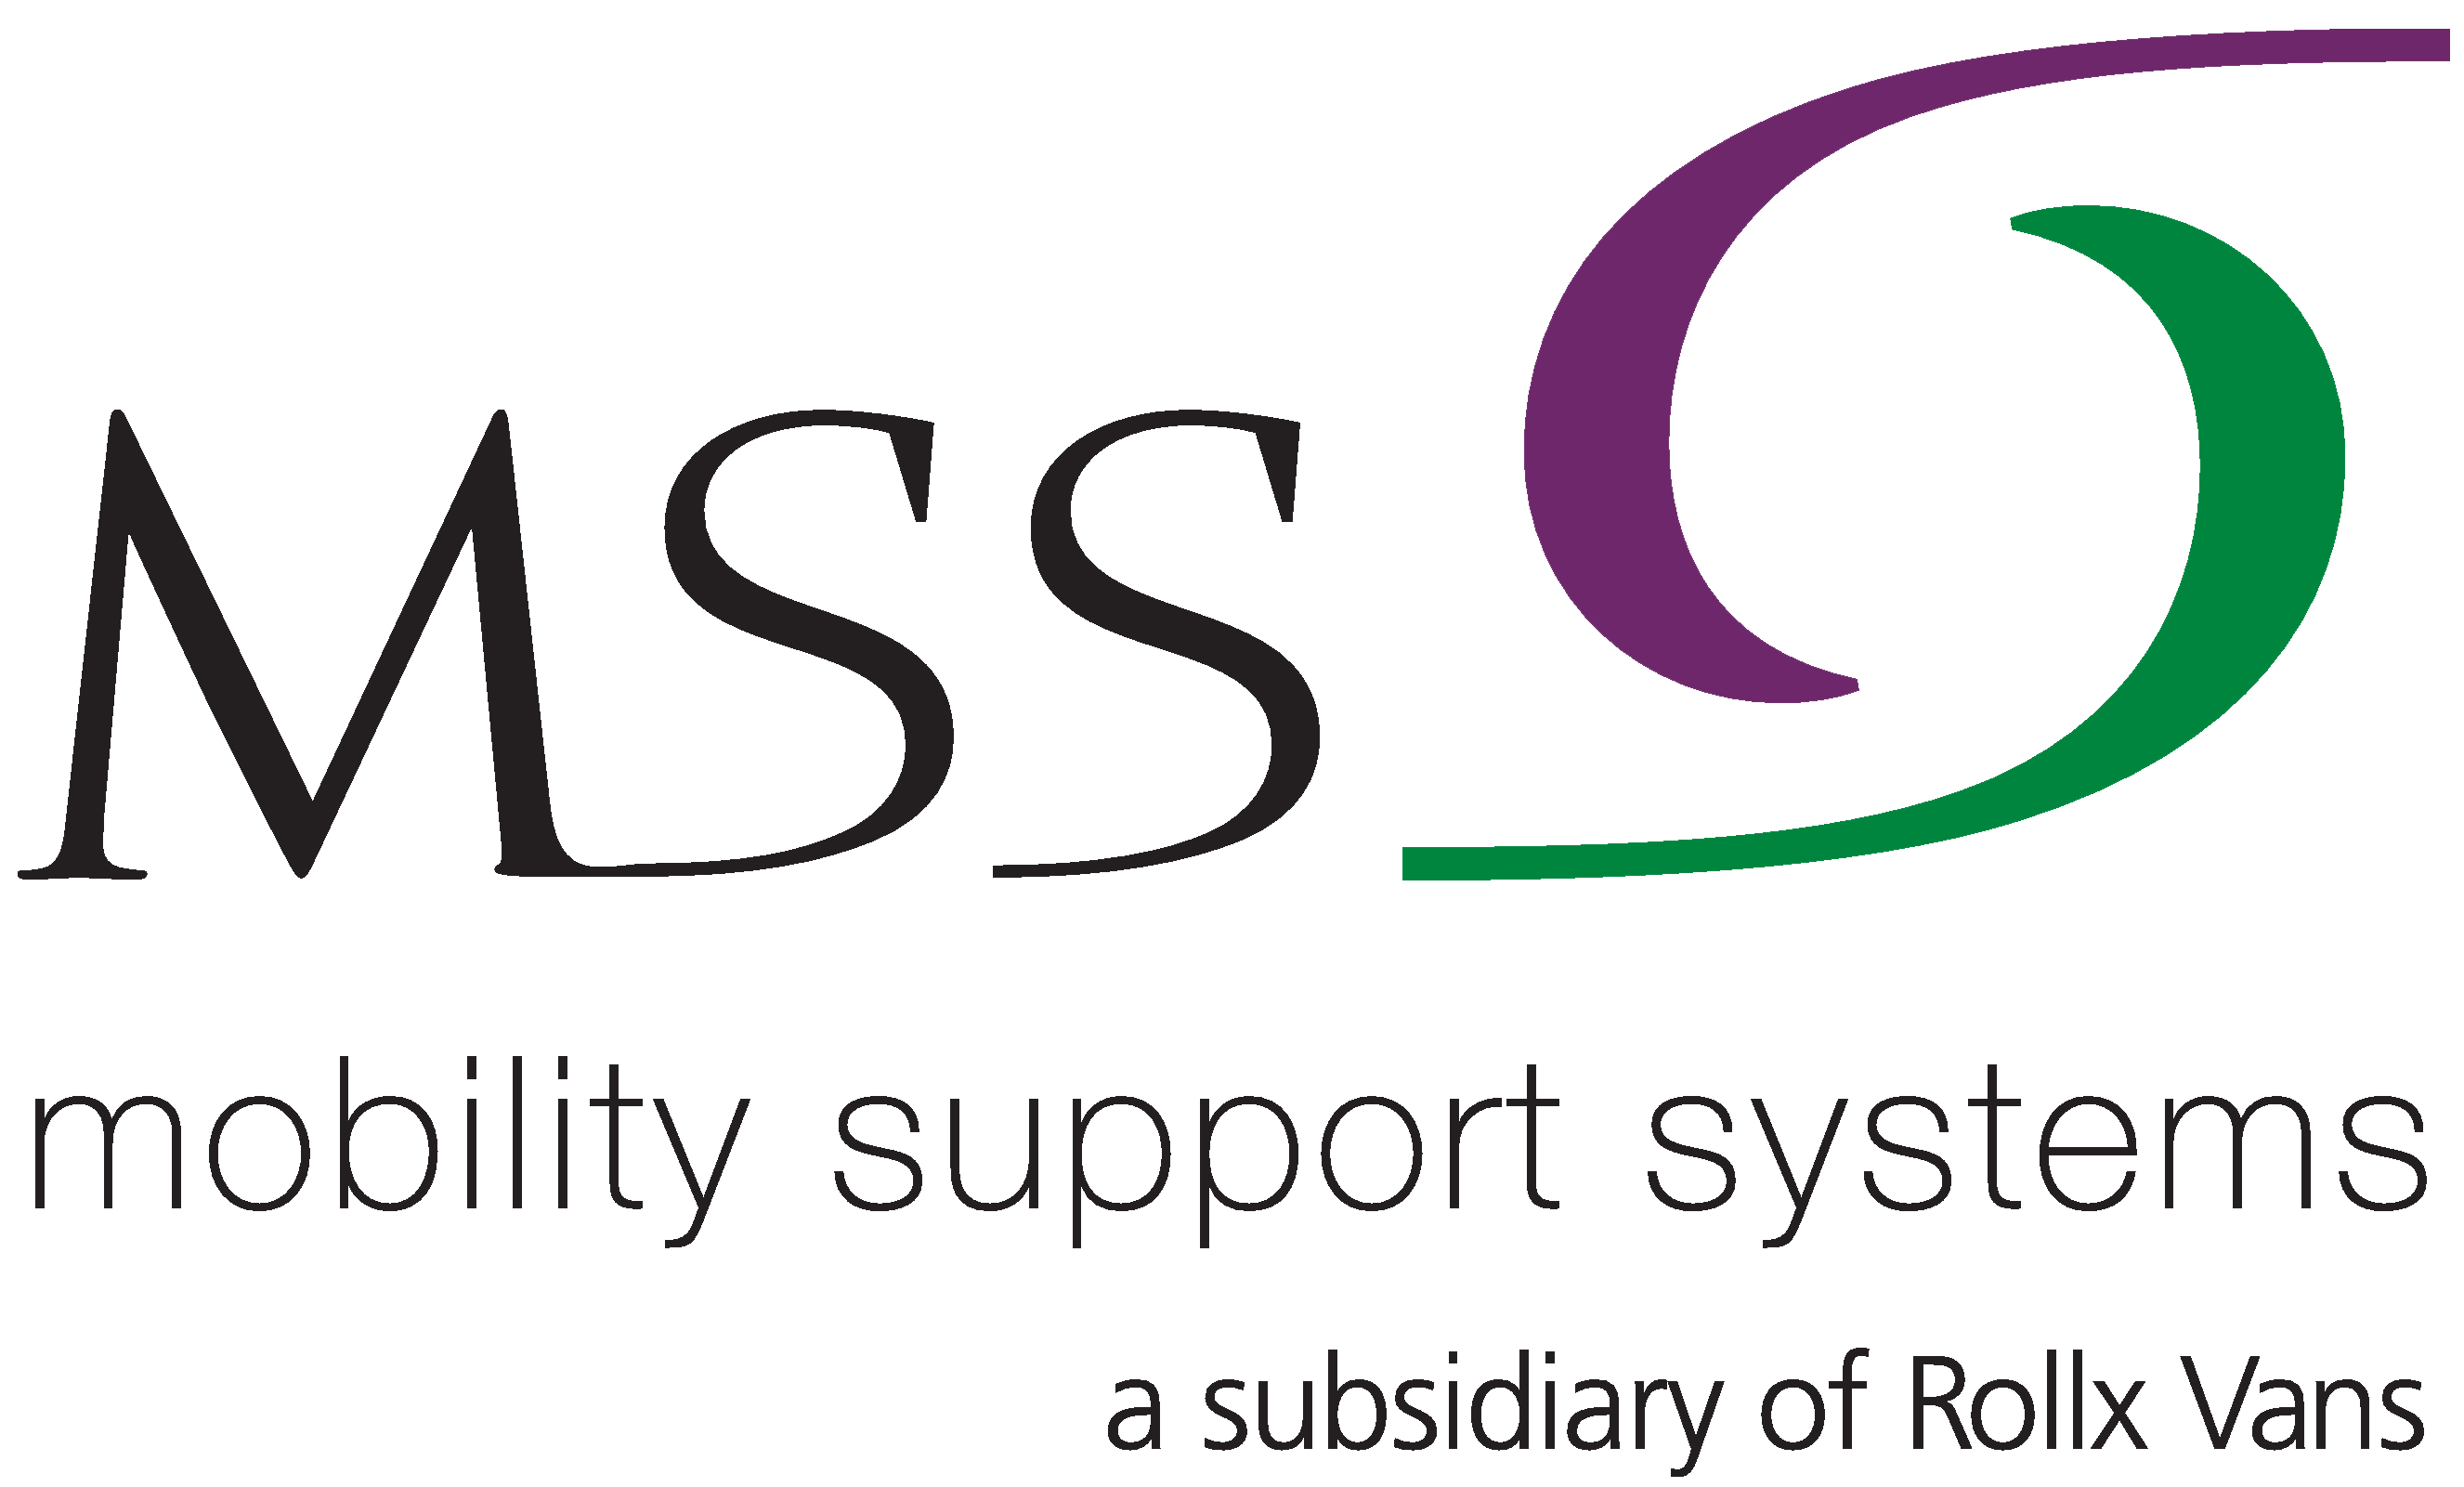 Mobility Support Systems